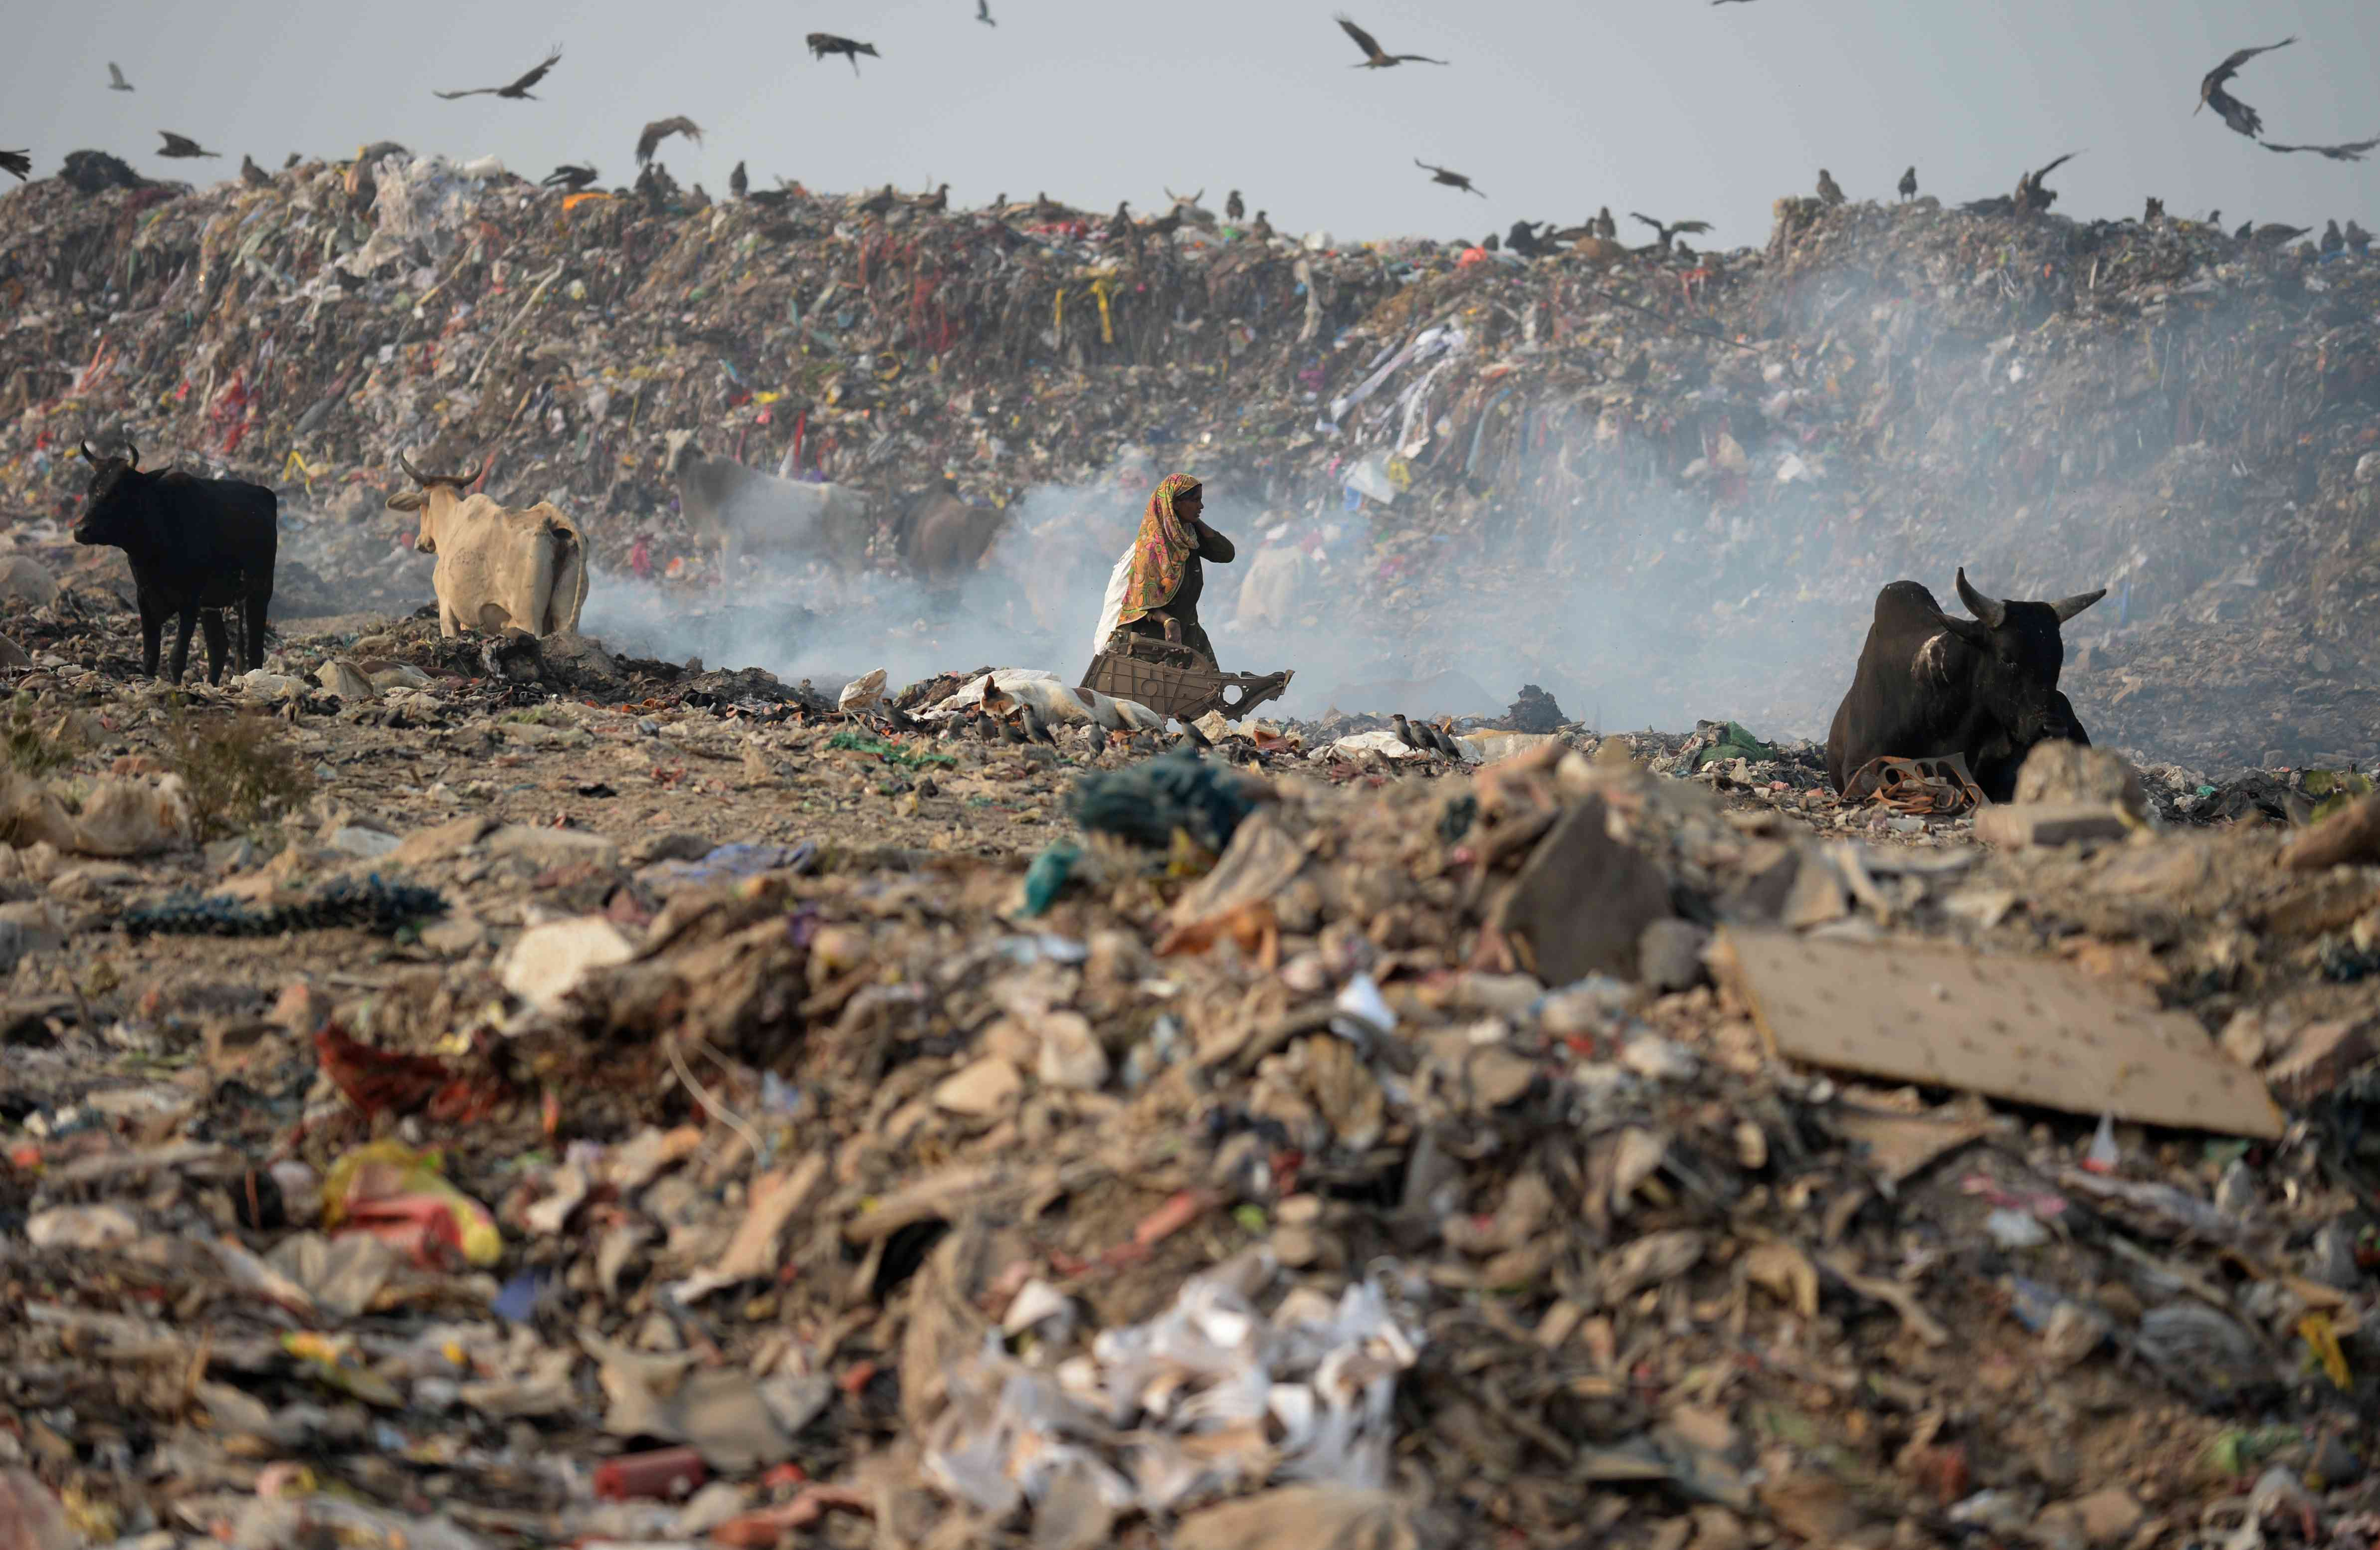 A ragpicker looks for usable scrap from the Bhalswa landfill. (Photo credit: Sajjad Hussain/AFP).